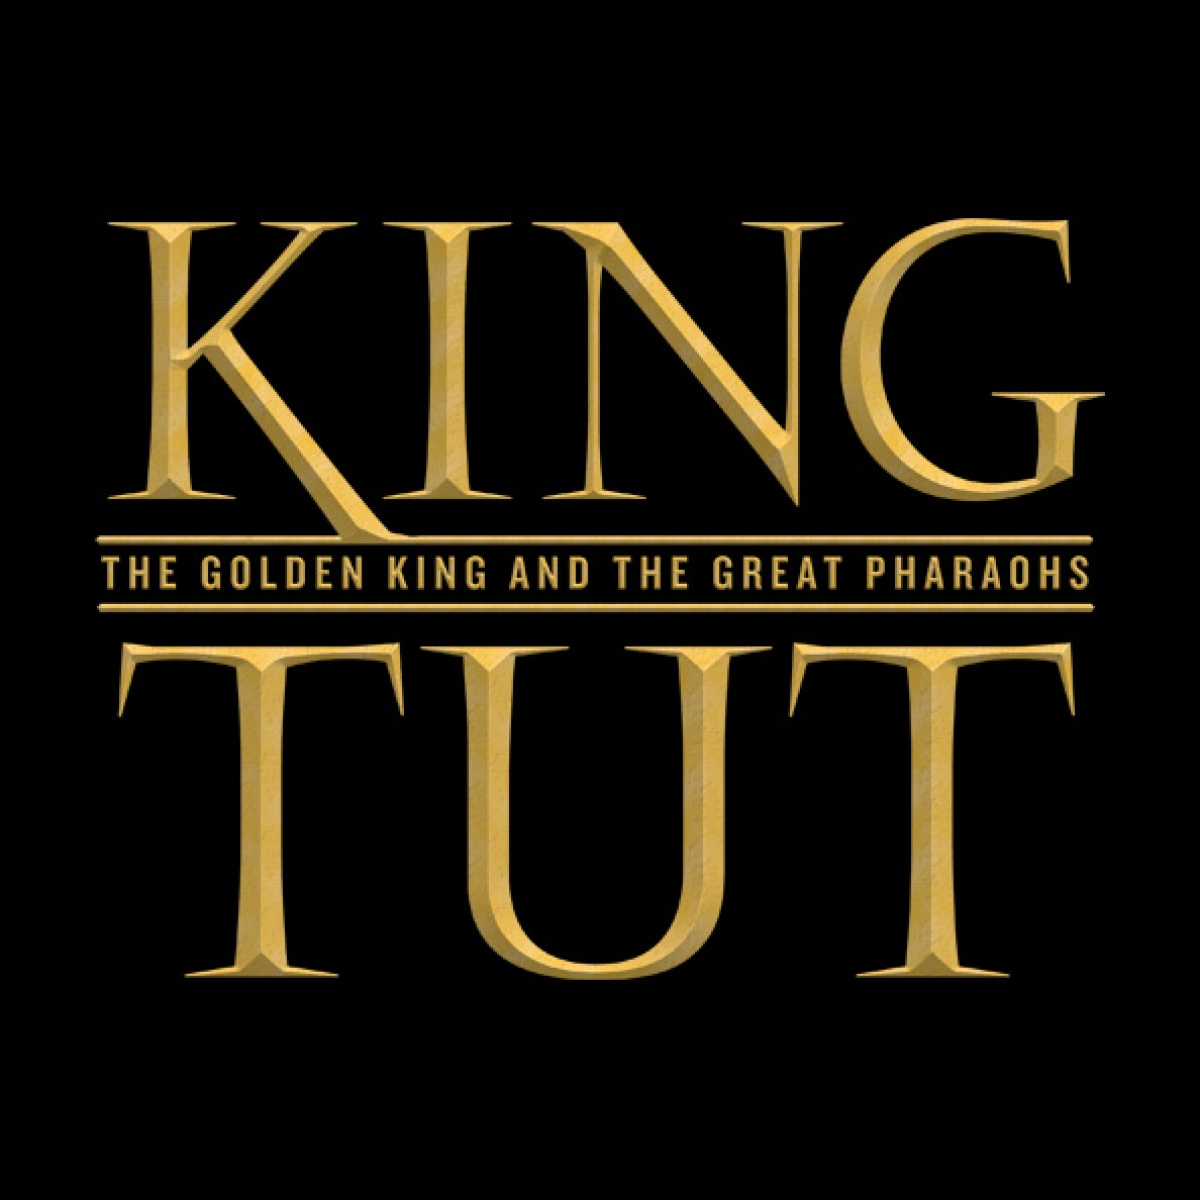 King Tut: The Golden King and the Great Pharaohs Exhibit